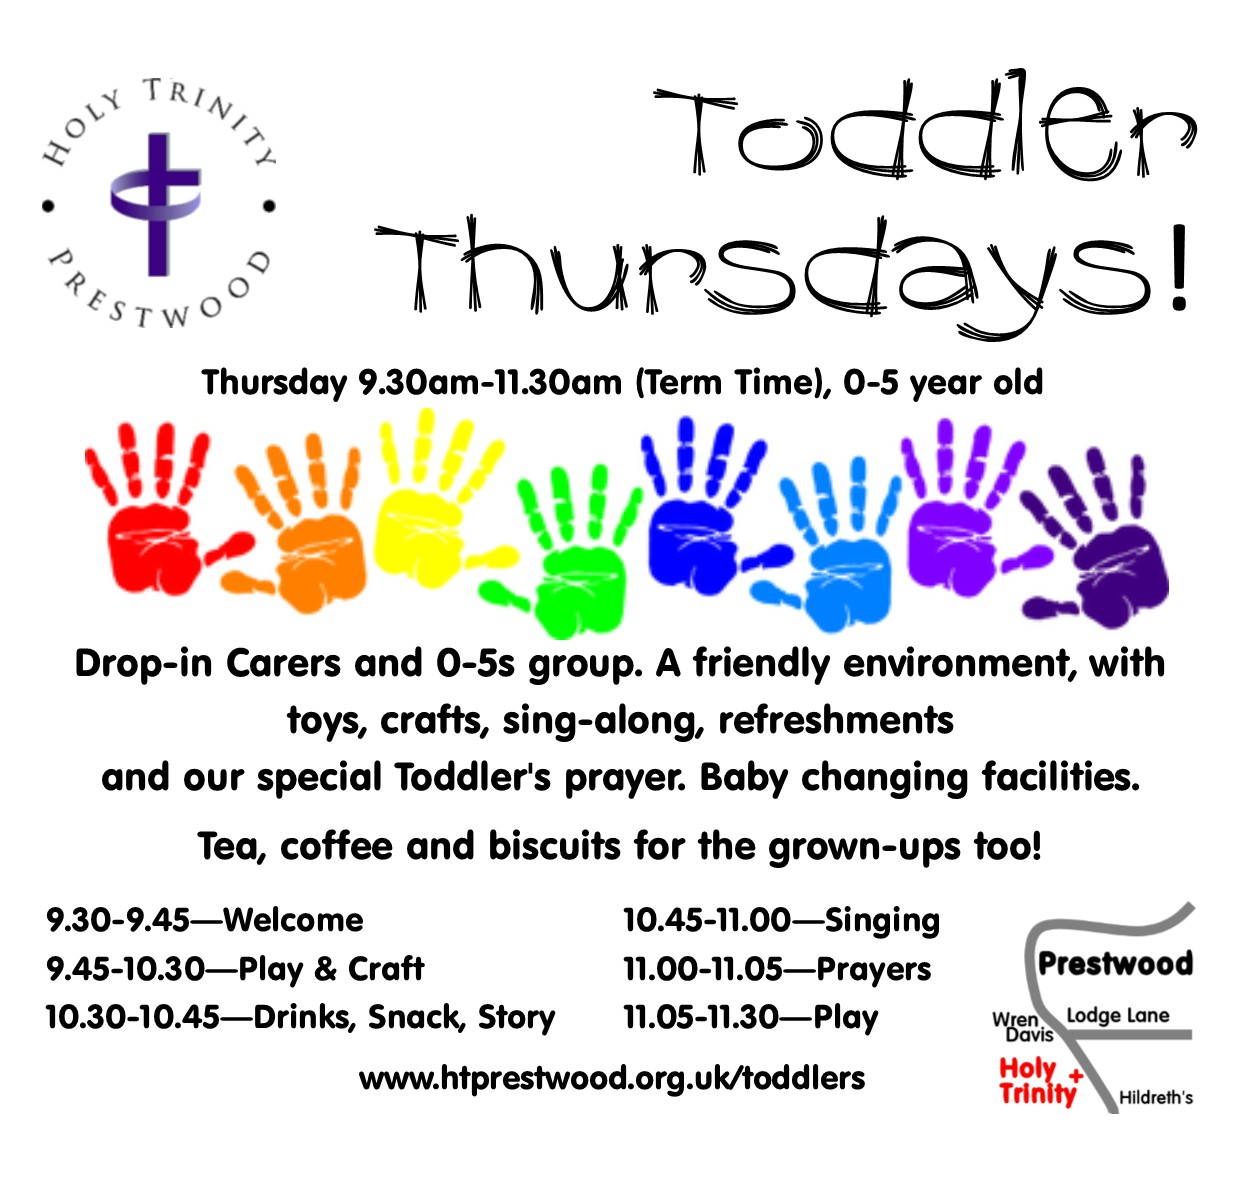 ToddlerThursdayProgrammePic